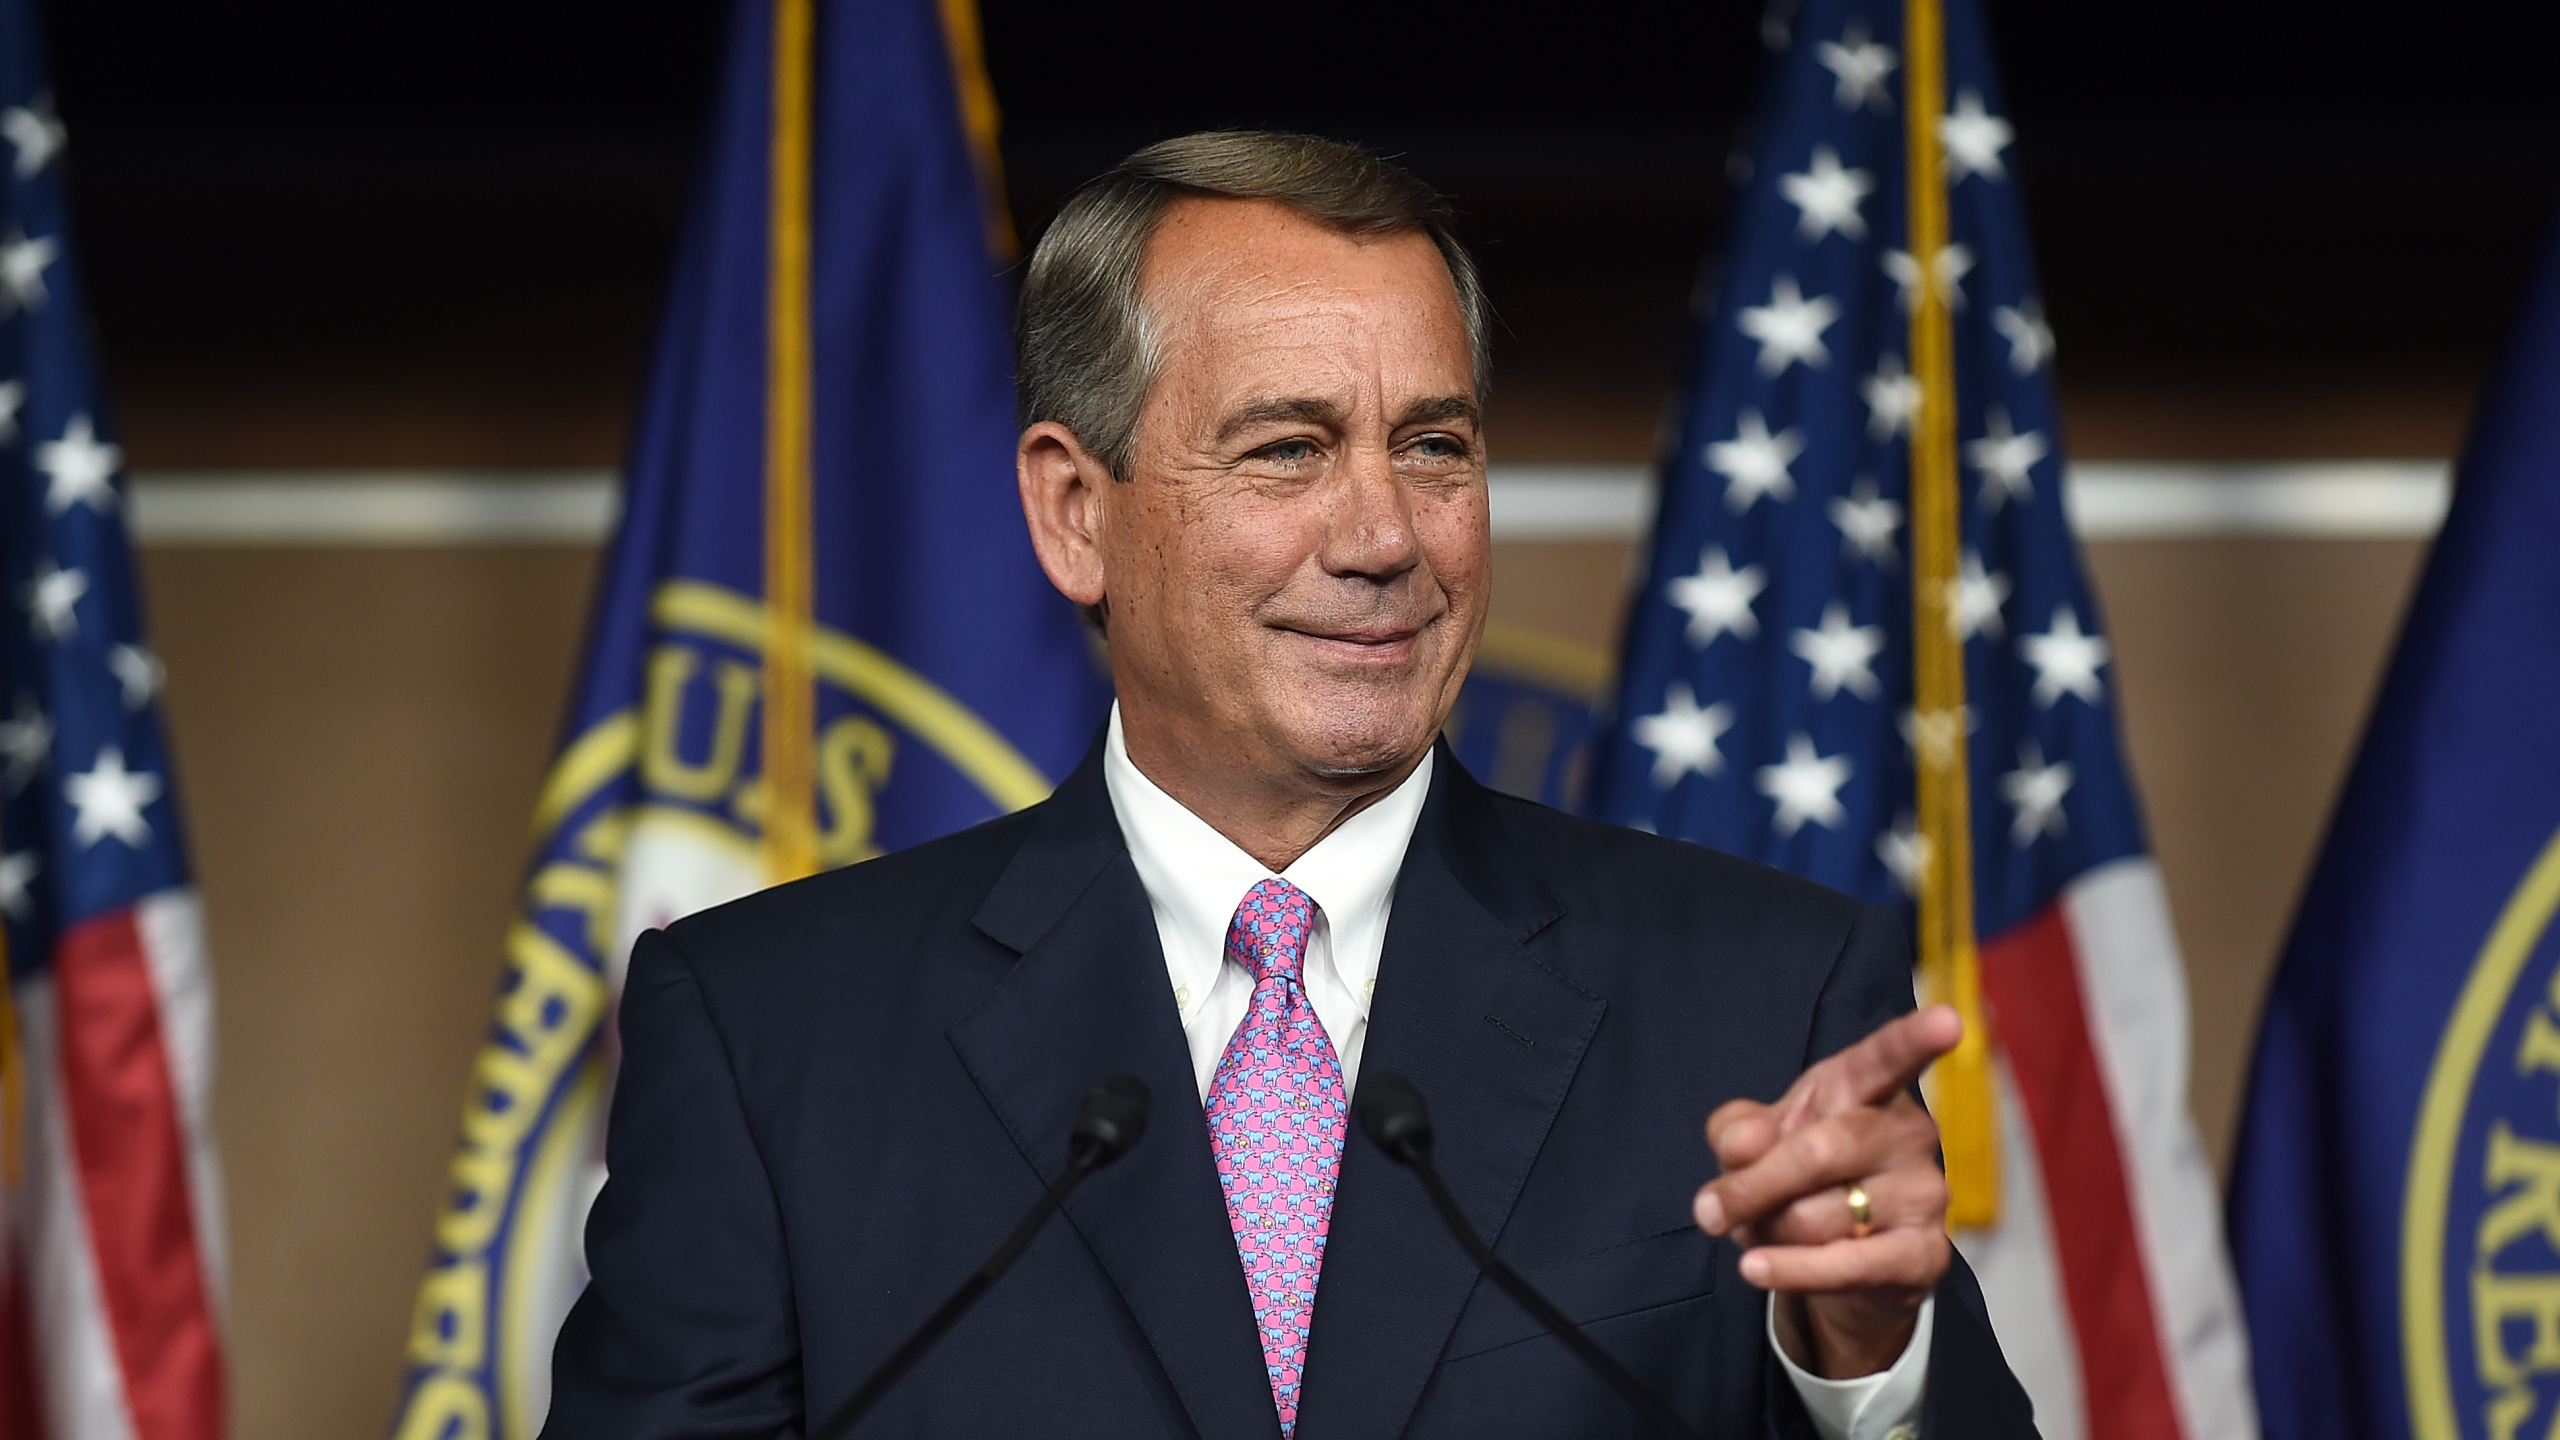 House Speaker John Boehner holds a news conference on Capitol Hill in Washington, DC, July 29, 2015. (Credit: Astrid Riecken / Getty Images)